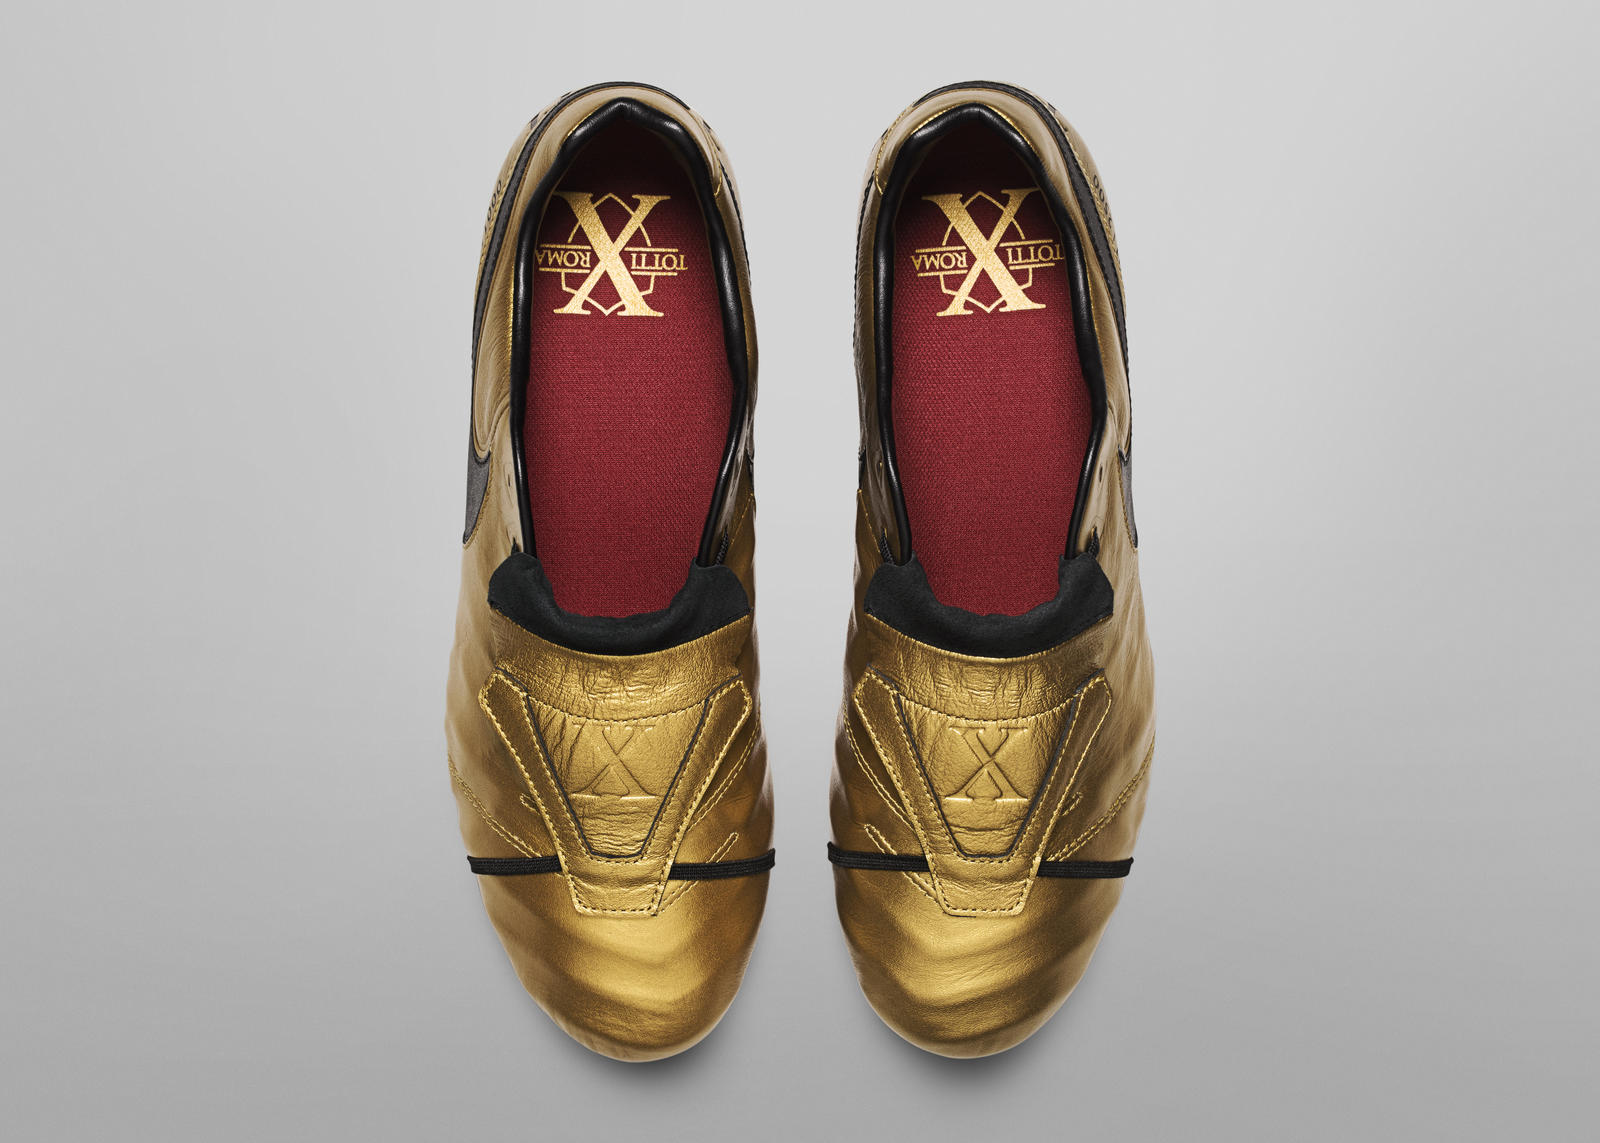 a30ec414e7bc Limited Edition Tiempo Totti x Roma Boots Celebrate Totti's Remarkable 25  Year Career 8